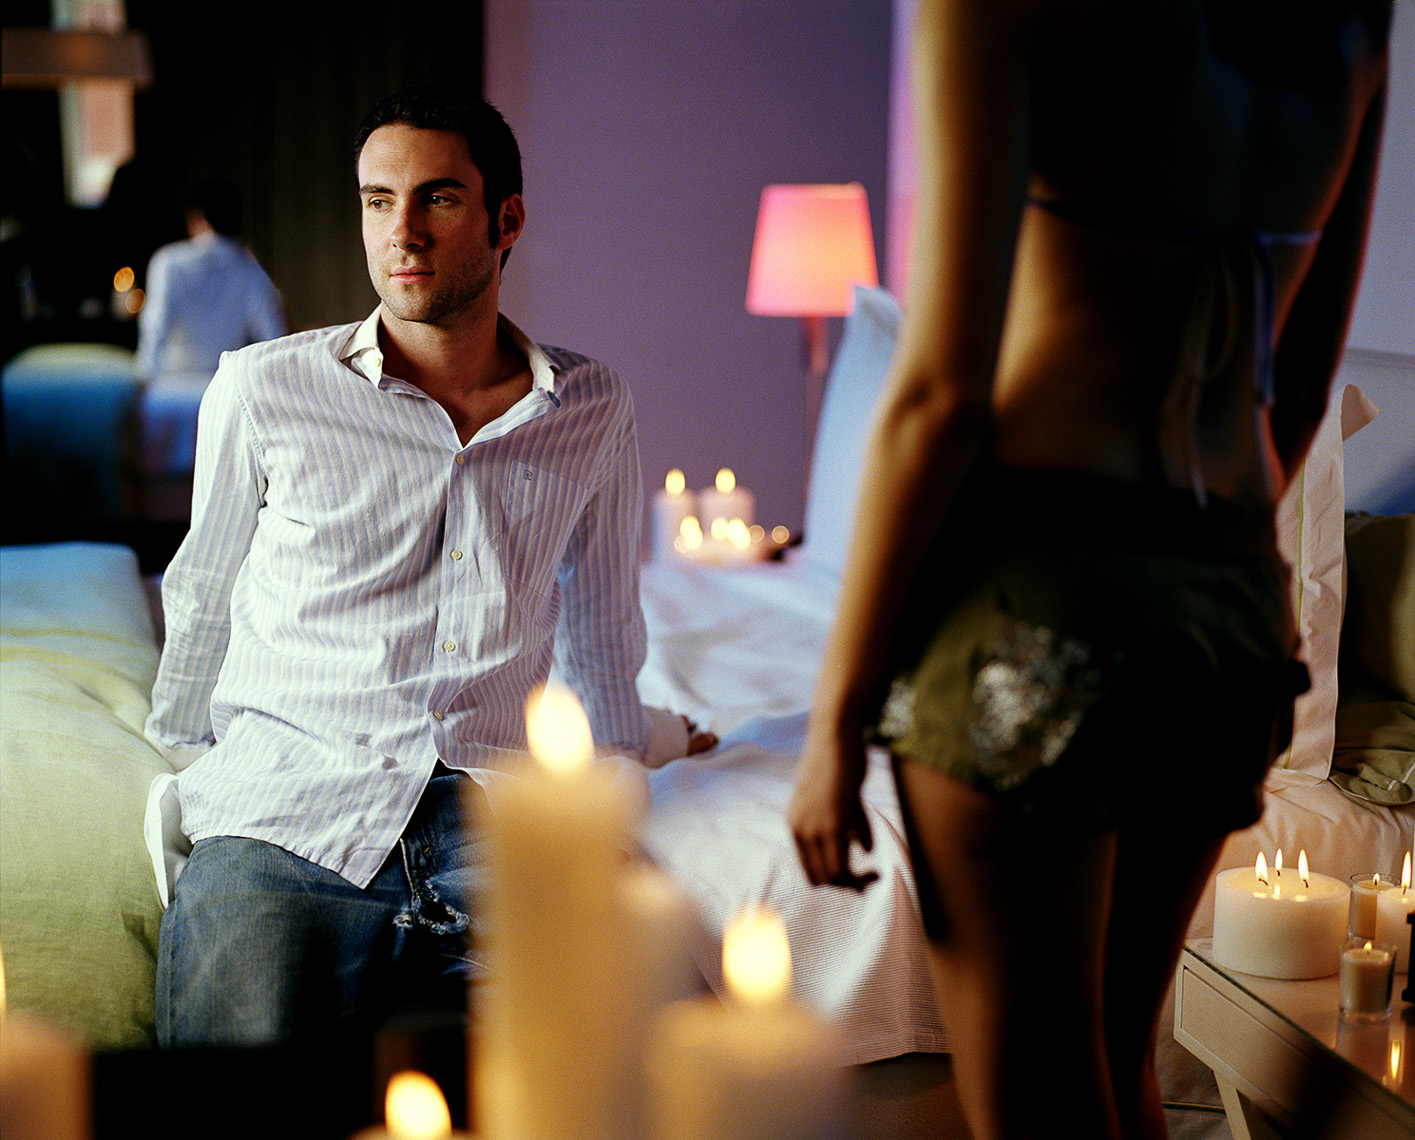 25-70-Adam-Levine-in-Room